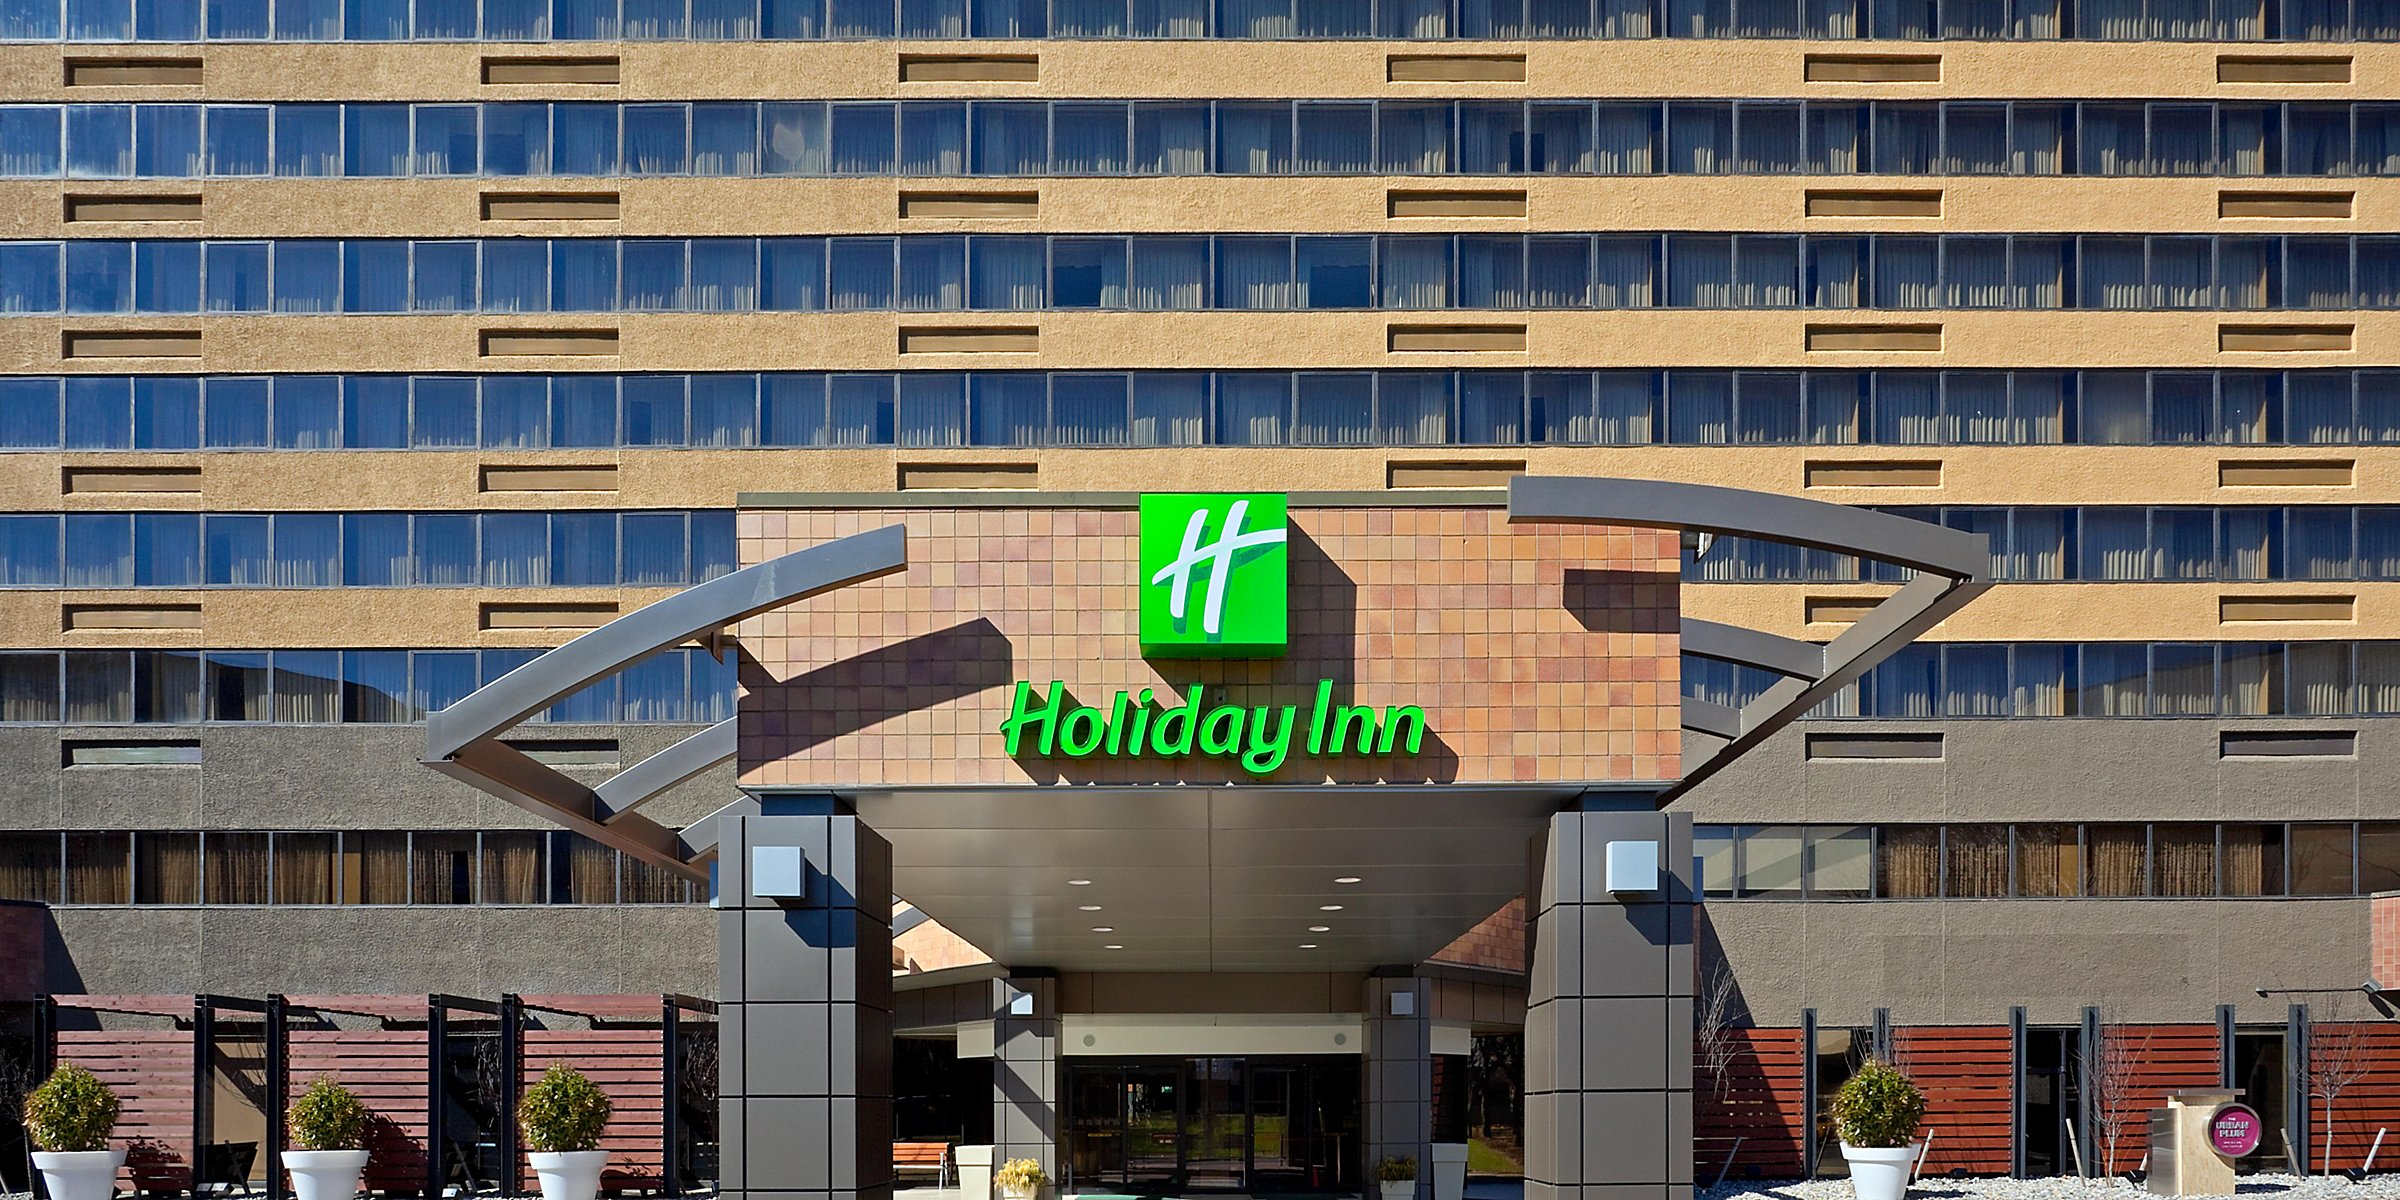 Affordable Secaucus Nj Hotels Holiday Inn Secaucus Meadowlands